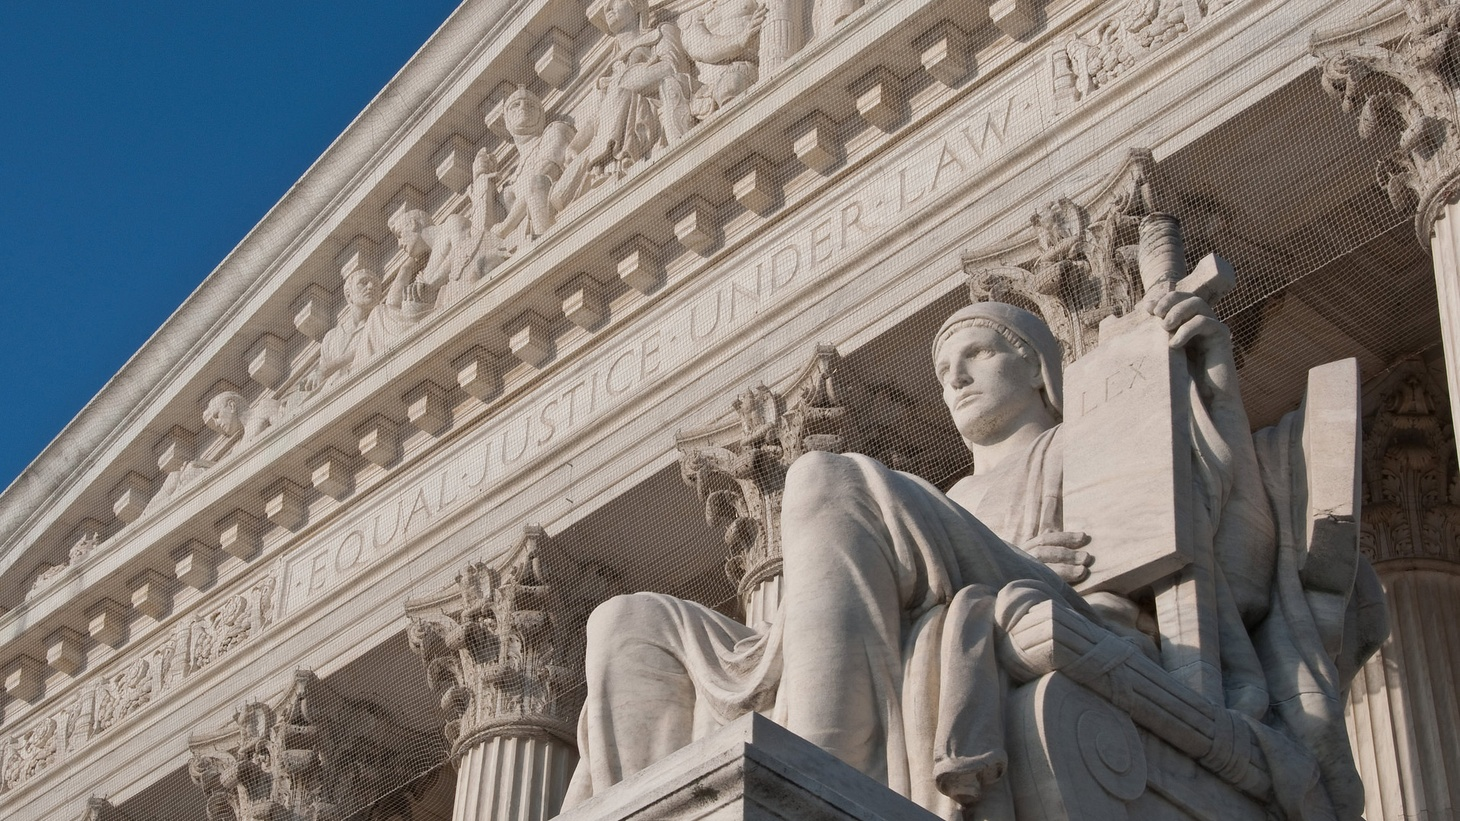 The US Supreme Court decided the Presidential election in the year 2000. The majority over-ruled the courts of Florida despite promises to uphold states rights. That was the first big story for this program. Today we look at what's happened since.